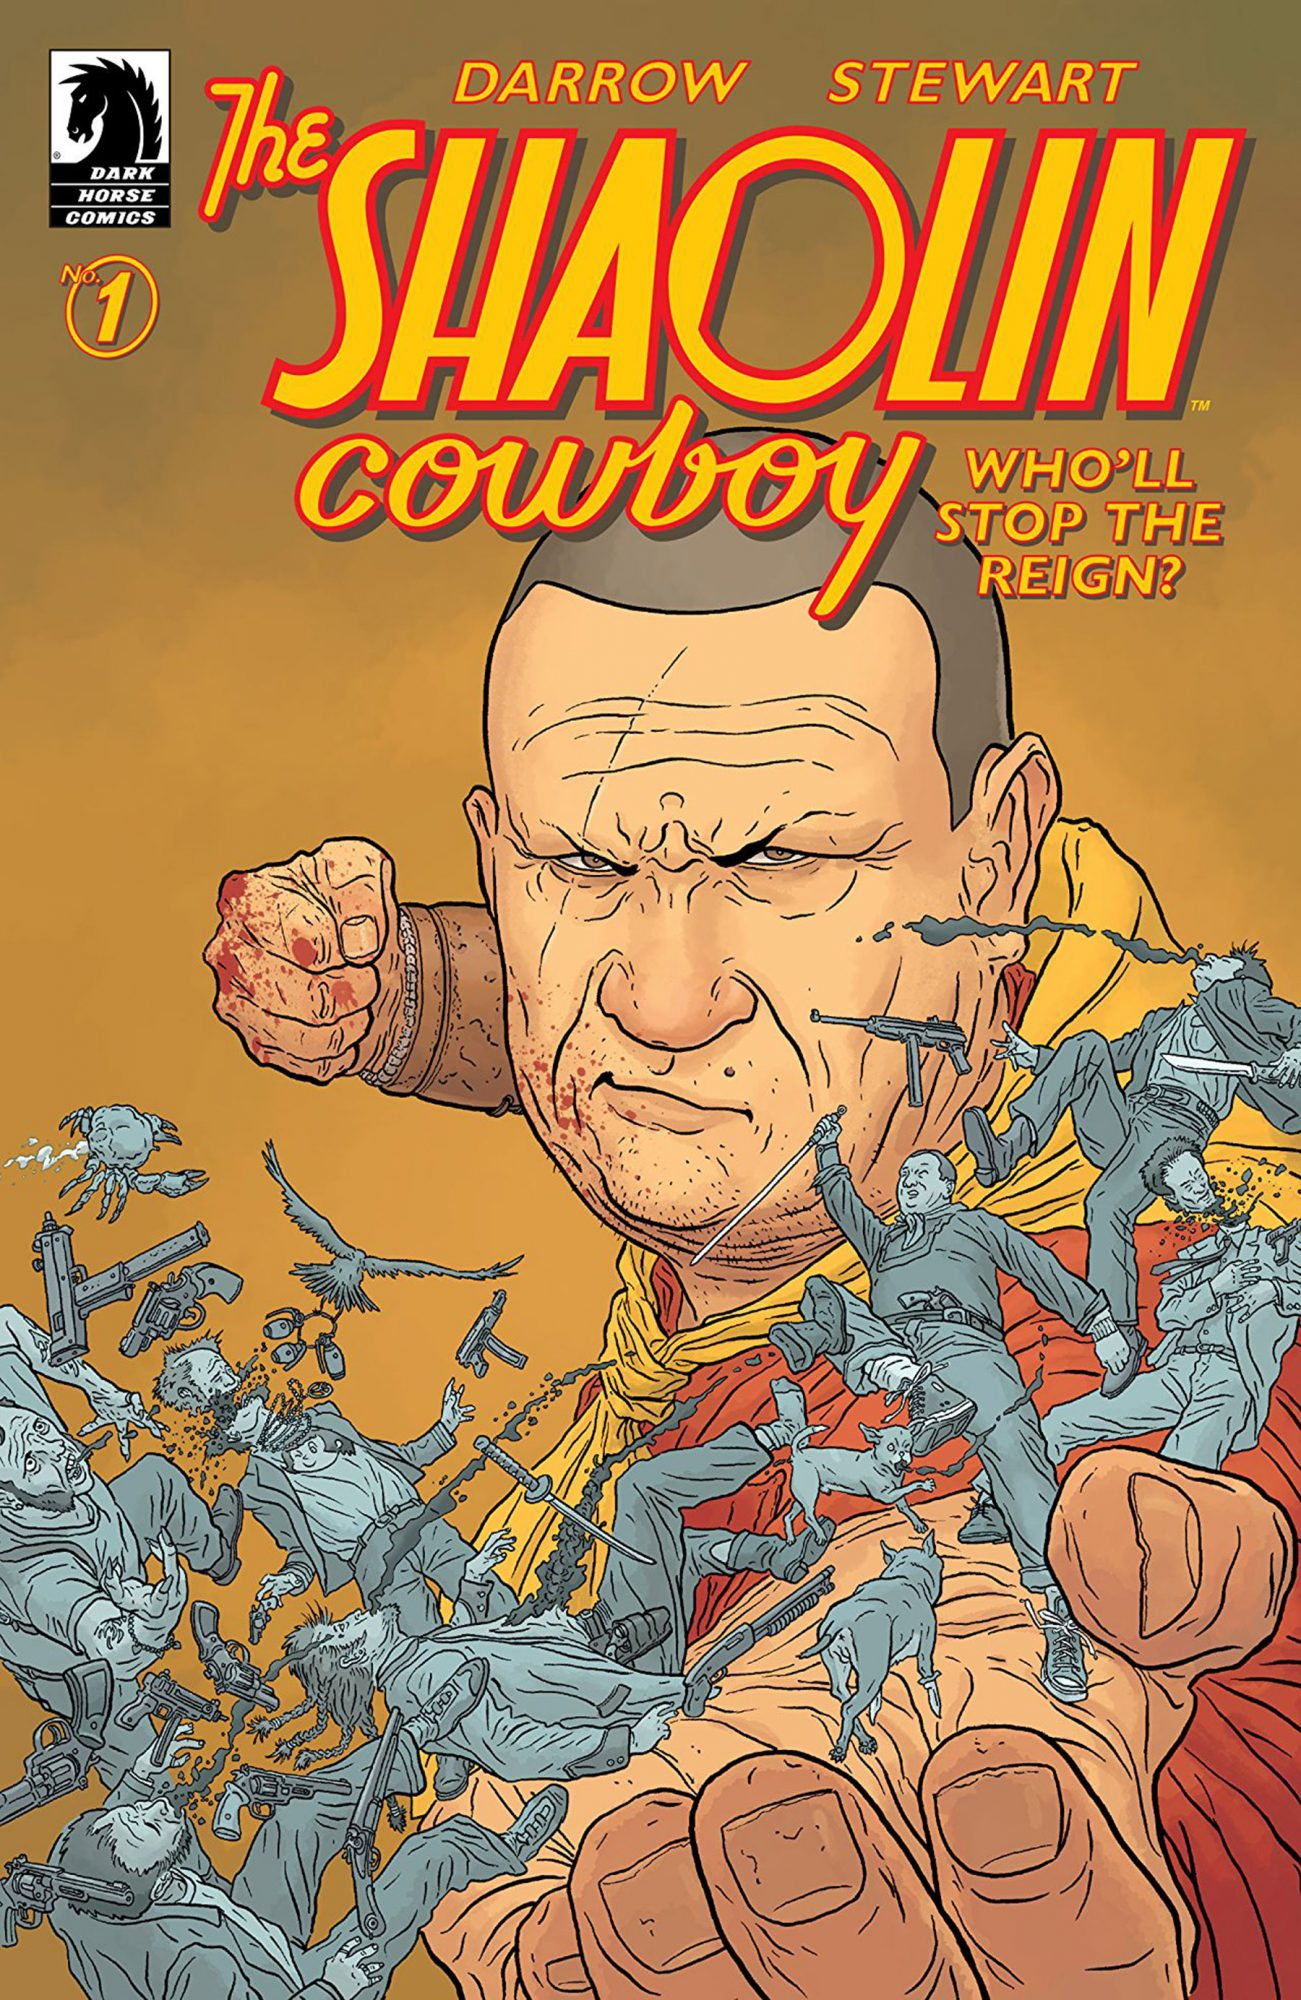 Best Political Commentary: Shaolin Cowboy: Who'll Stop the Reign? (Dark Horse)